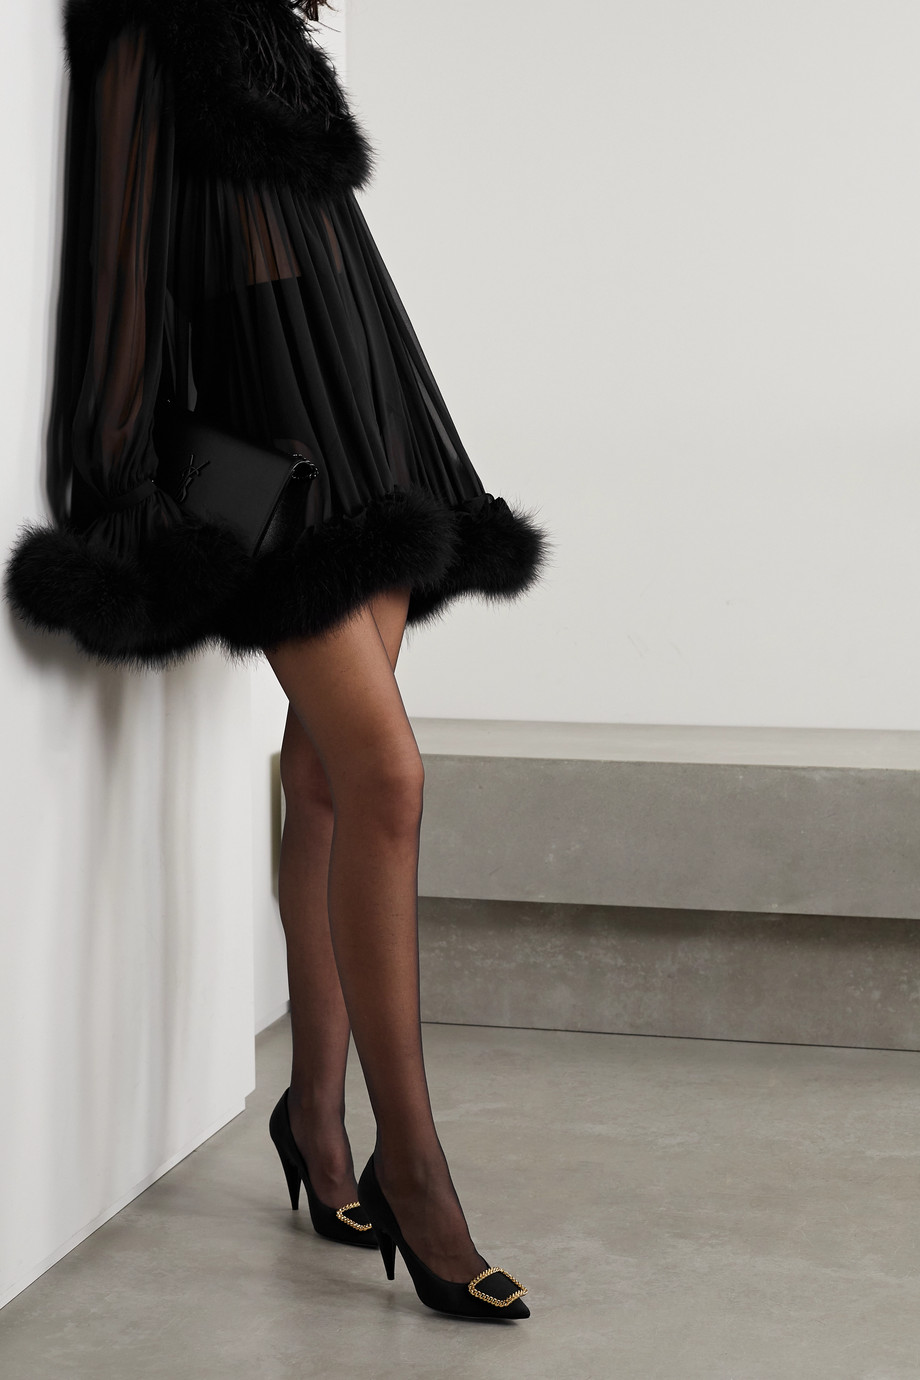 SAINT LAURENT Mini-robe en mousseline de soie à plumes